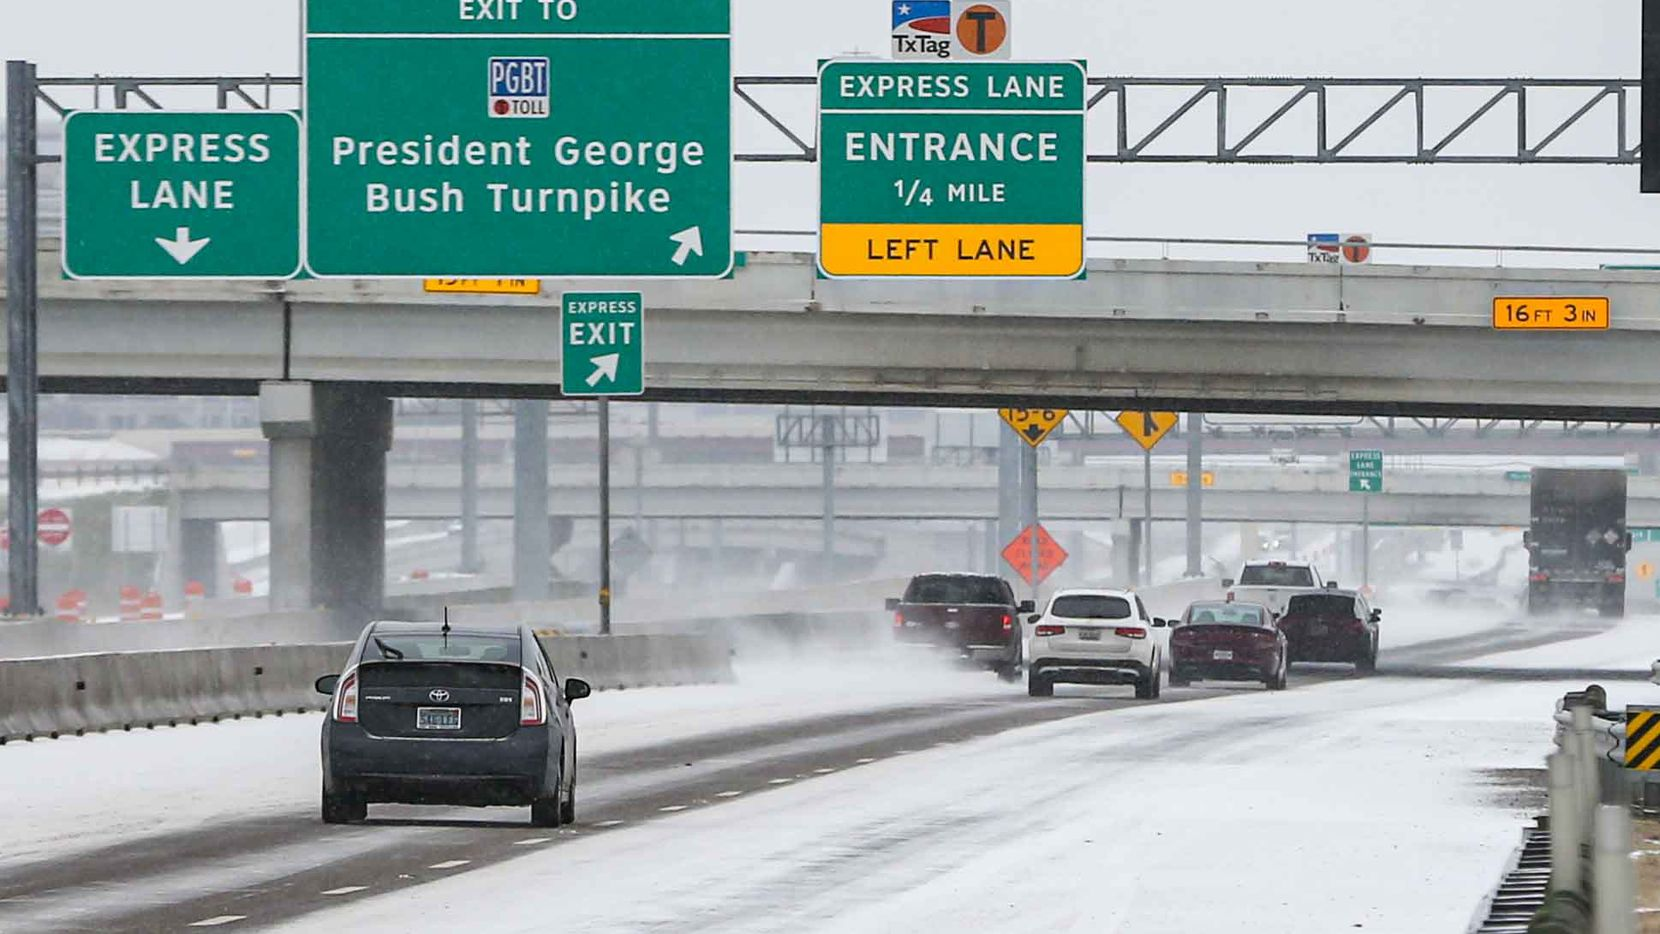 Traffic on Texas 114 TEXpress near MacArthur Blvd Winter flurries arrive in Irving on Sunday, February 14, 2021 ahead of major snowstorm. (Lola Gomez/The Dallas Morning News)